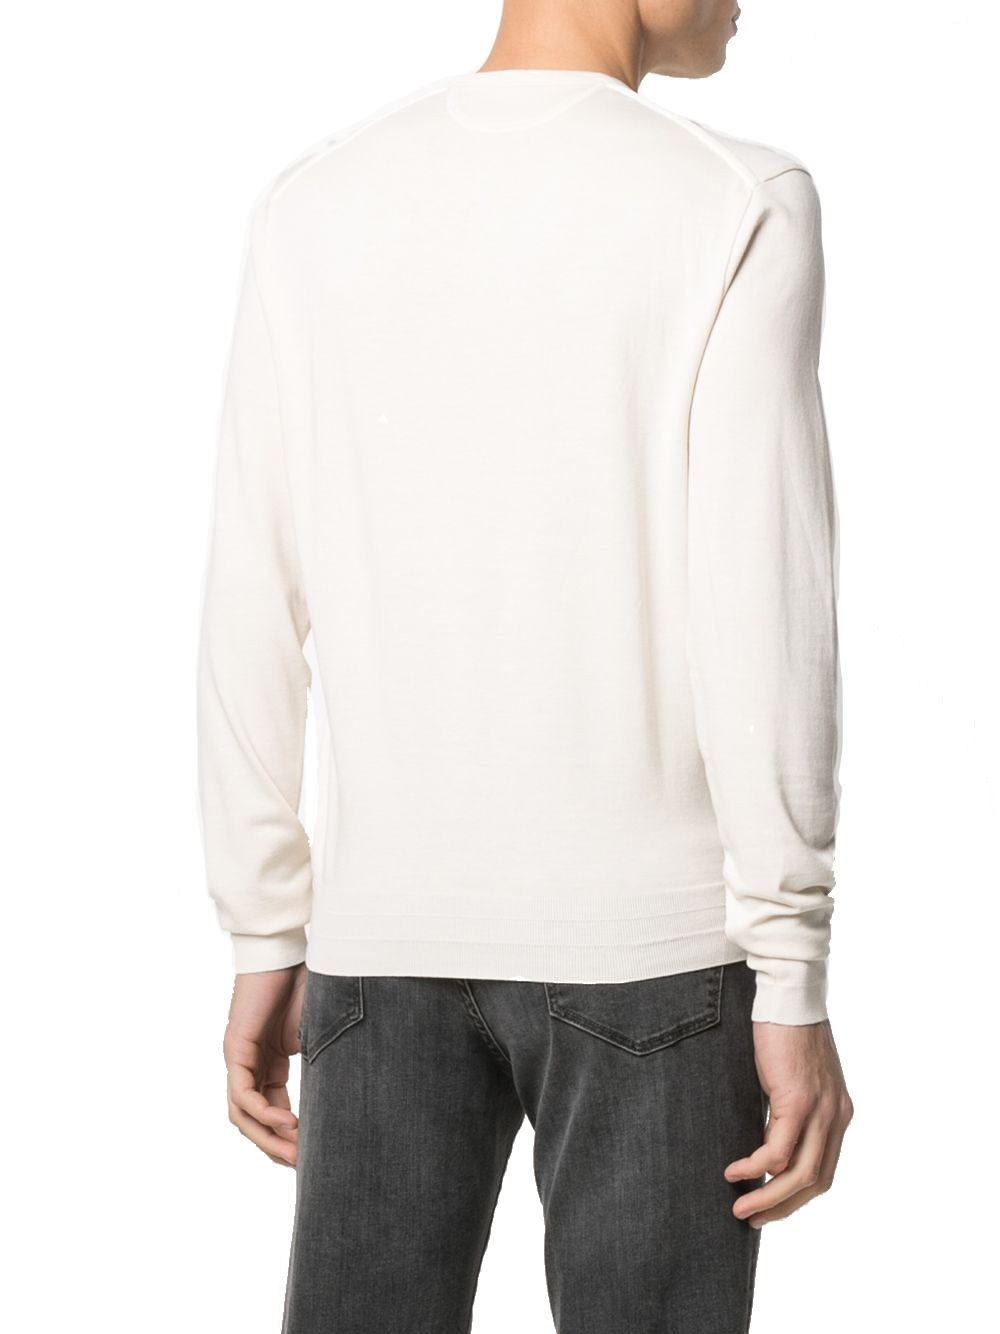 TOM FORD Cottons TOM FORD MEN'S BEIGE COTTON T-SHIRT